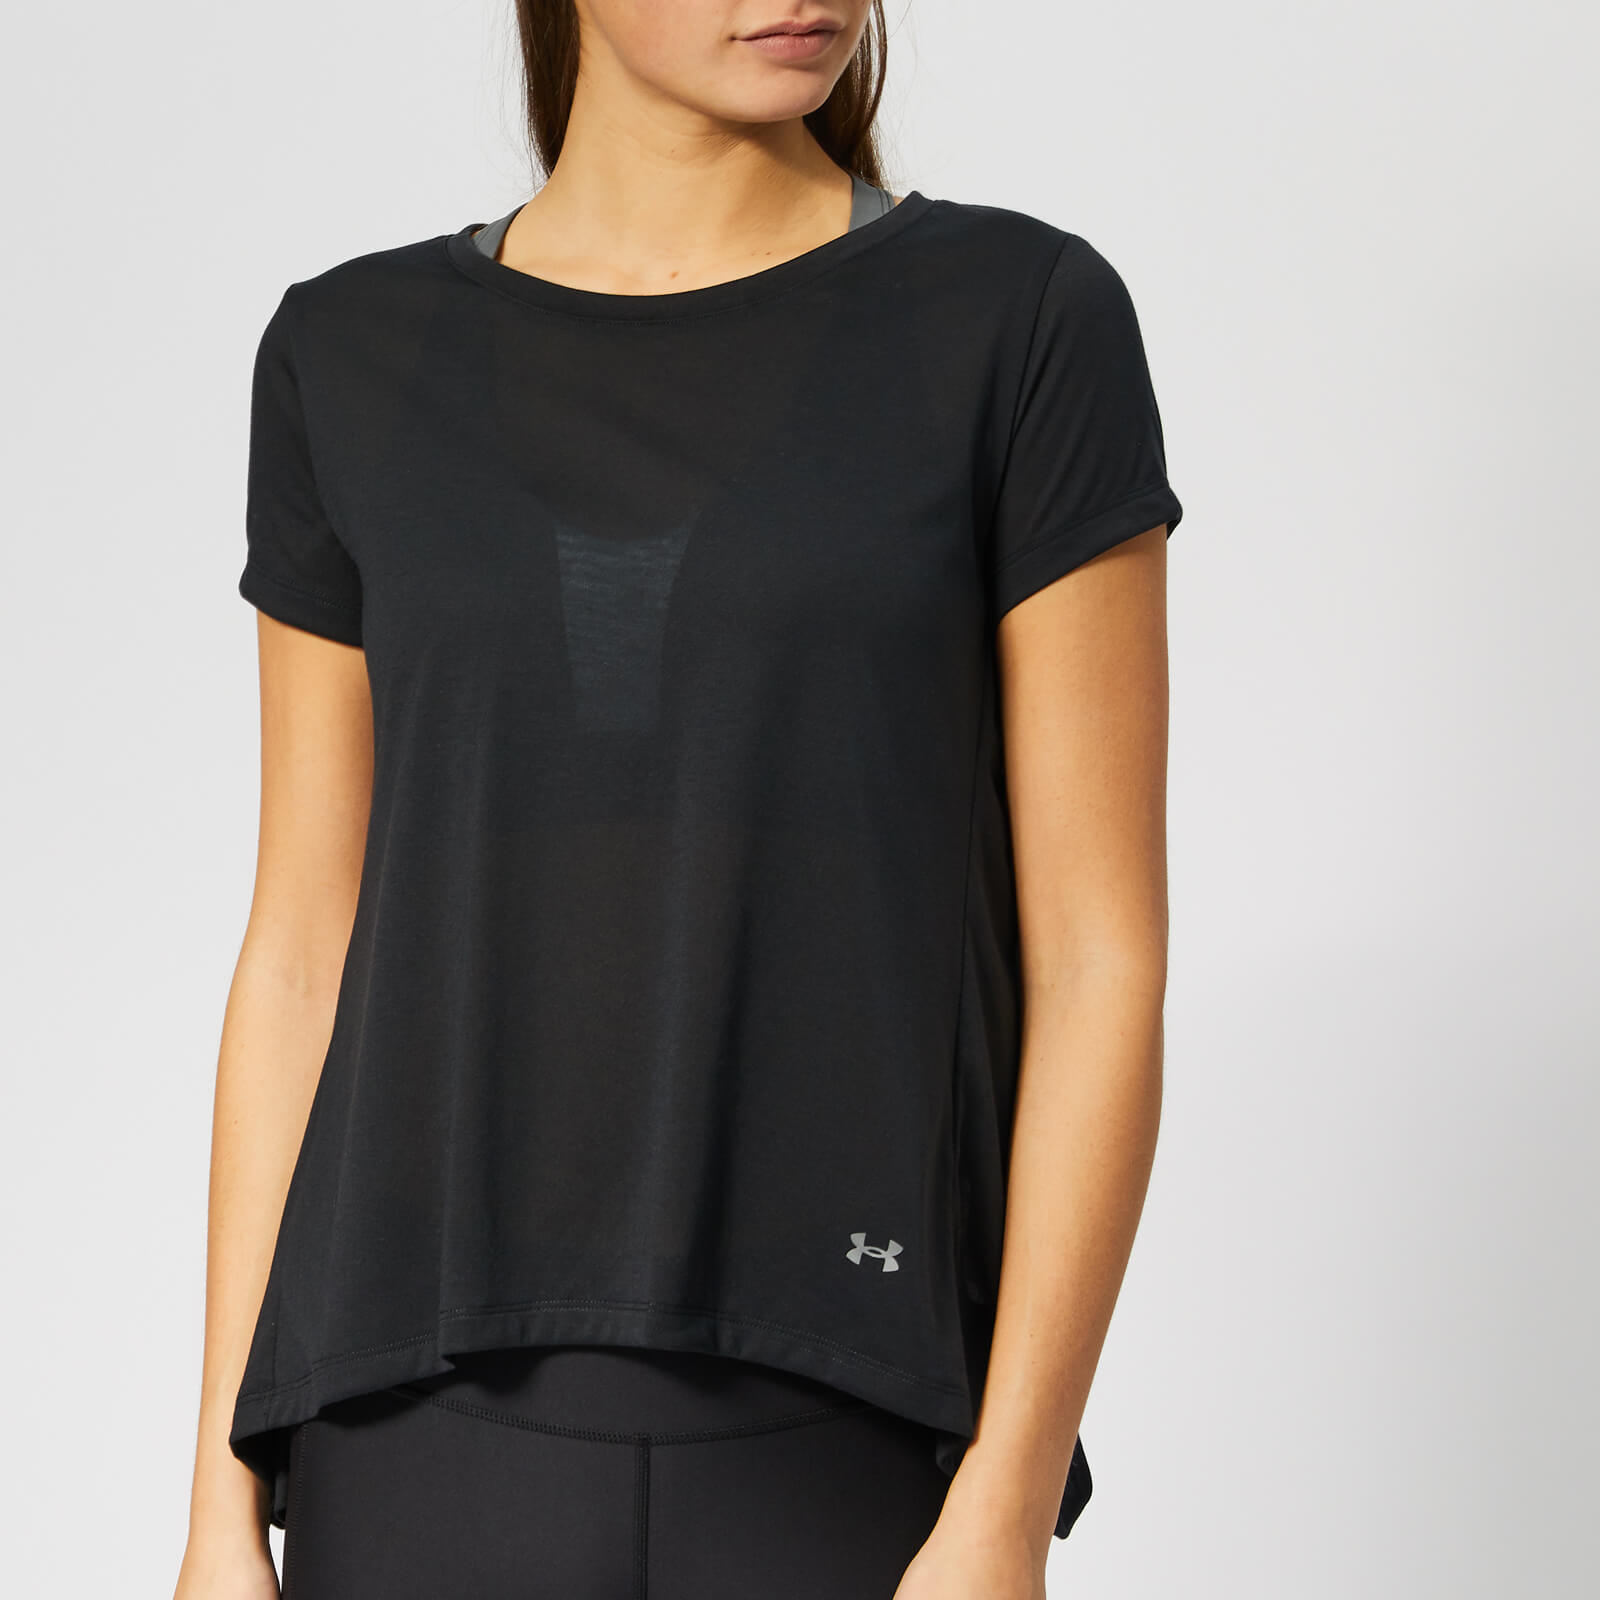 e9ab7c42 Under Armour Women's Whisper Light Foldover Short Sleeve T-Shirt - Black